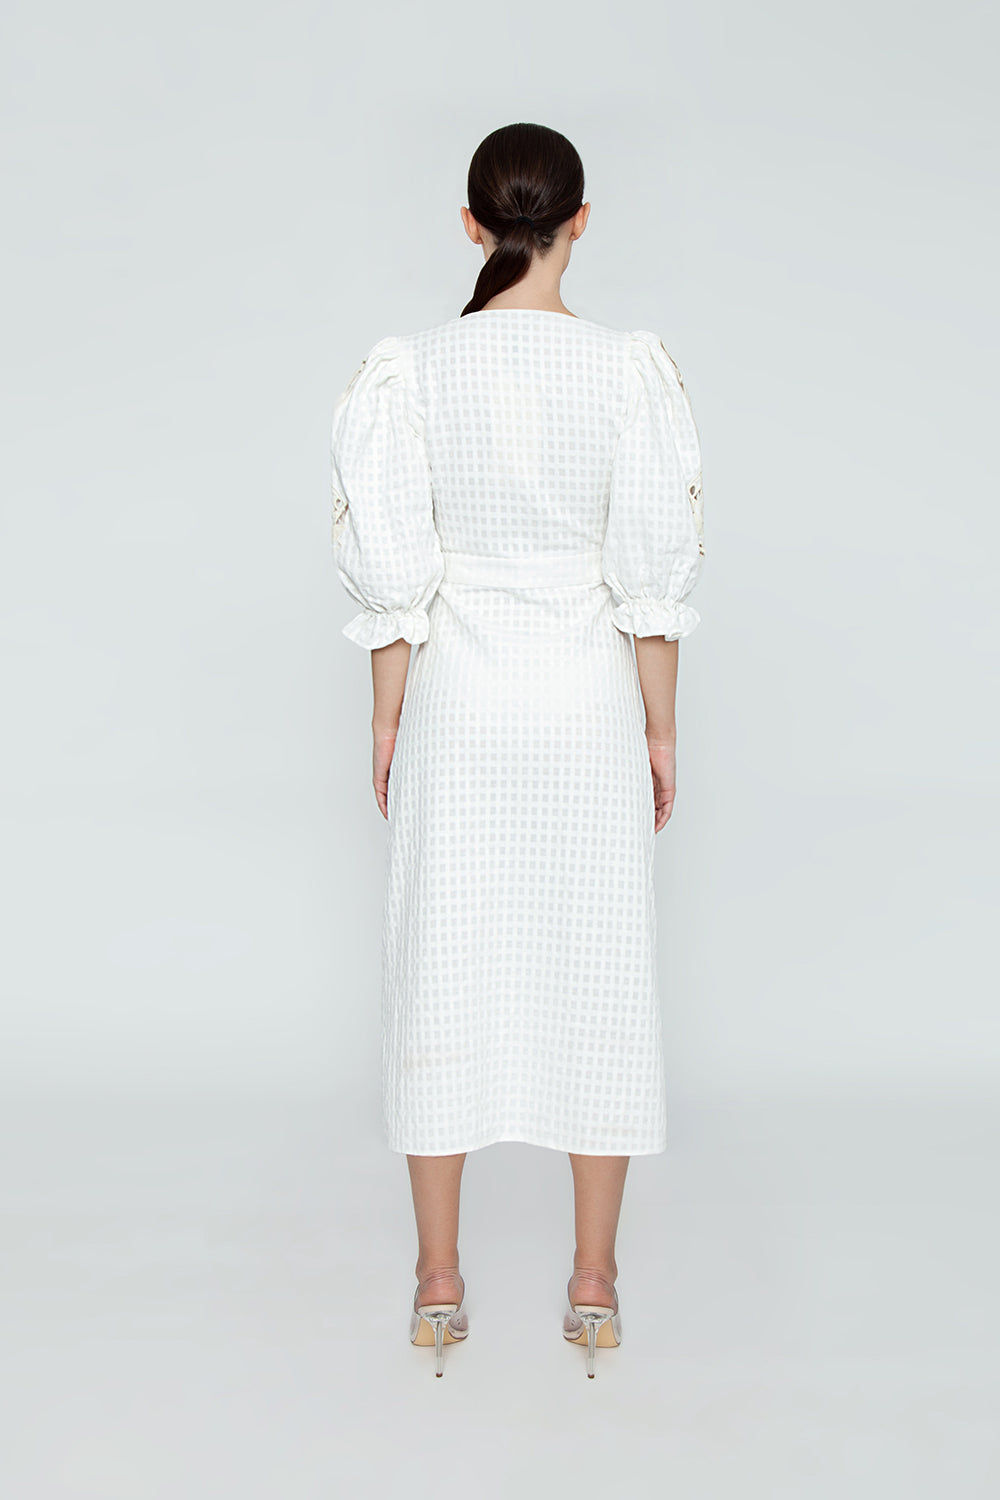 ADRIANA DEGREAS Cotton Embroidery Long Robe Cover-Up - Off White Cover Up | Off White| Adriana Degreas Embroidery Long Robe - Off White Long sleeve robe Plunging neckline Embroidered long sleeve detail  Front tie detail  Back View